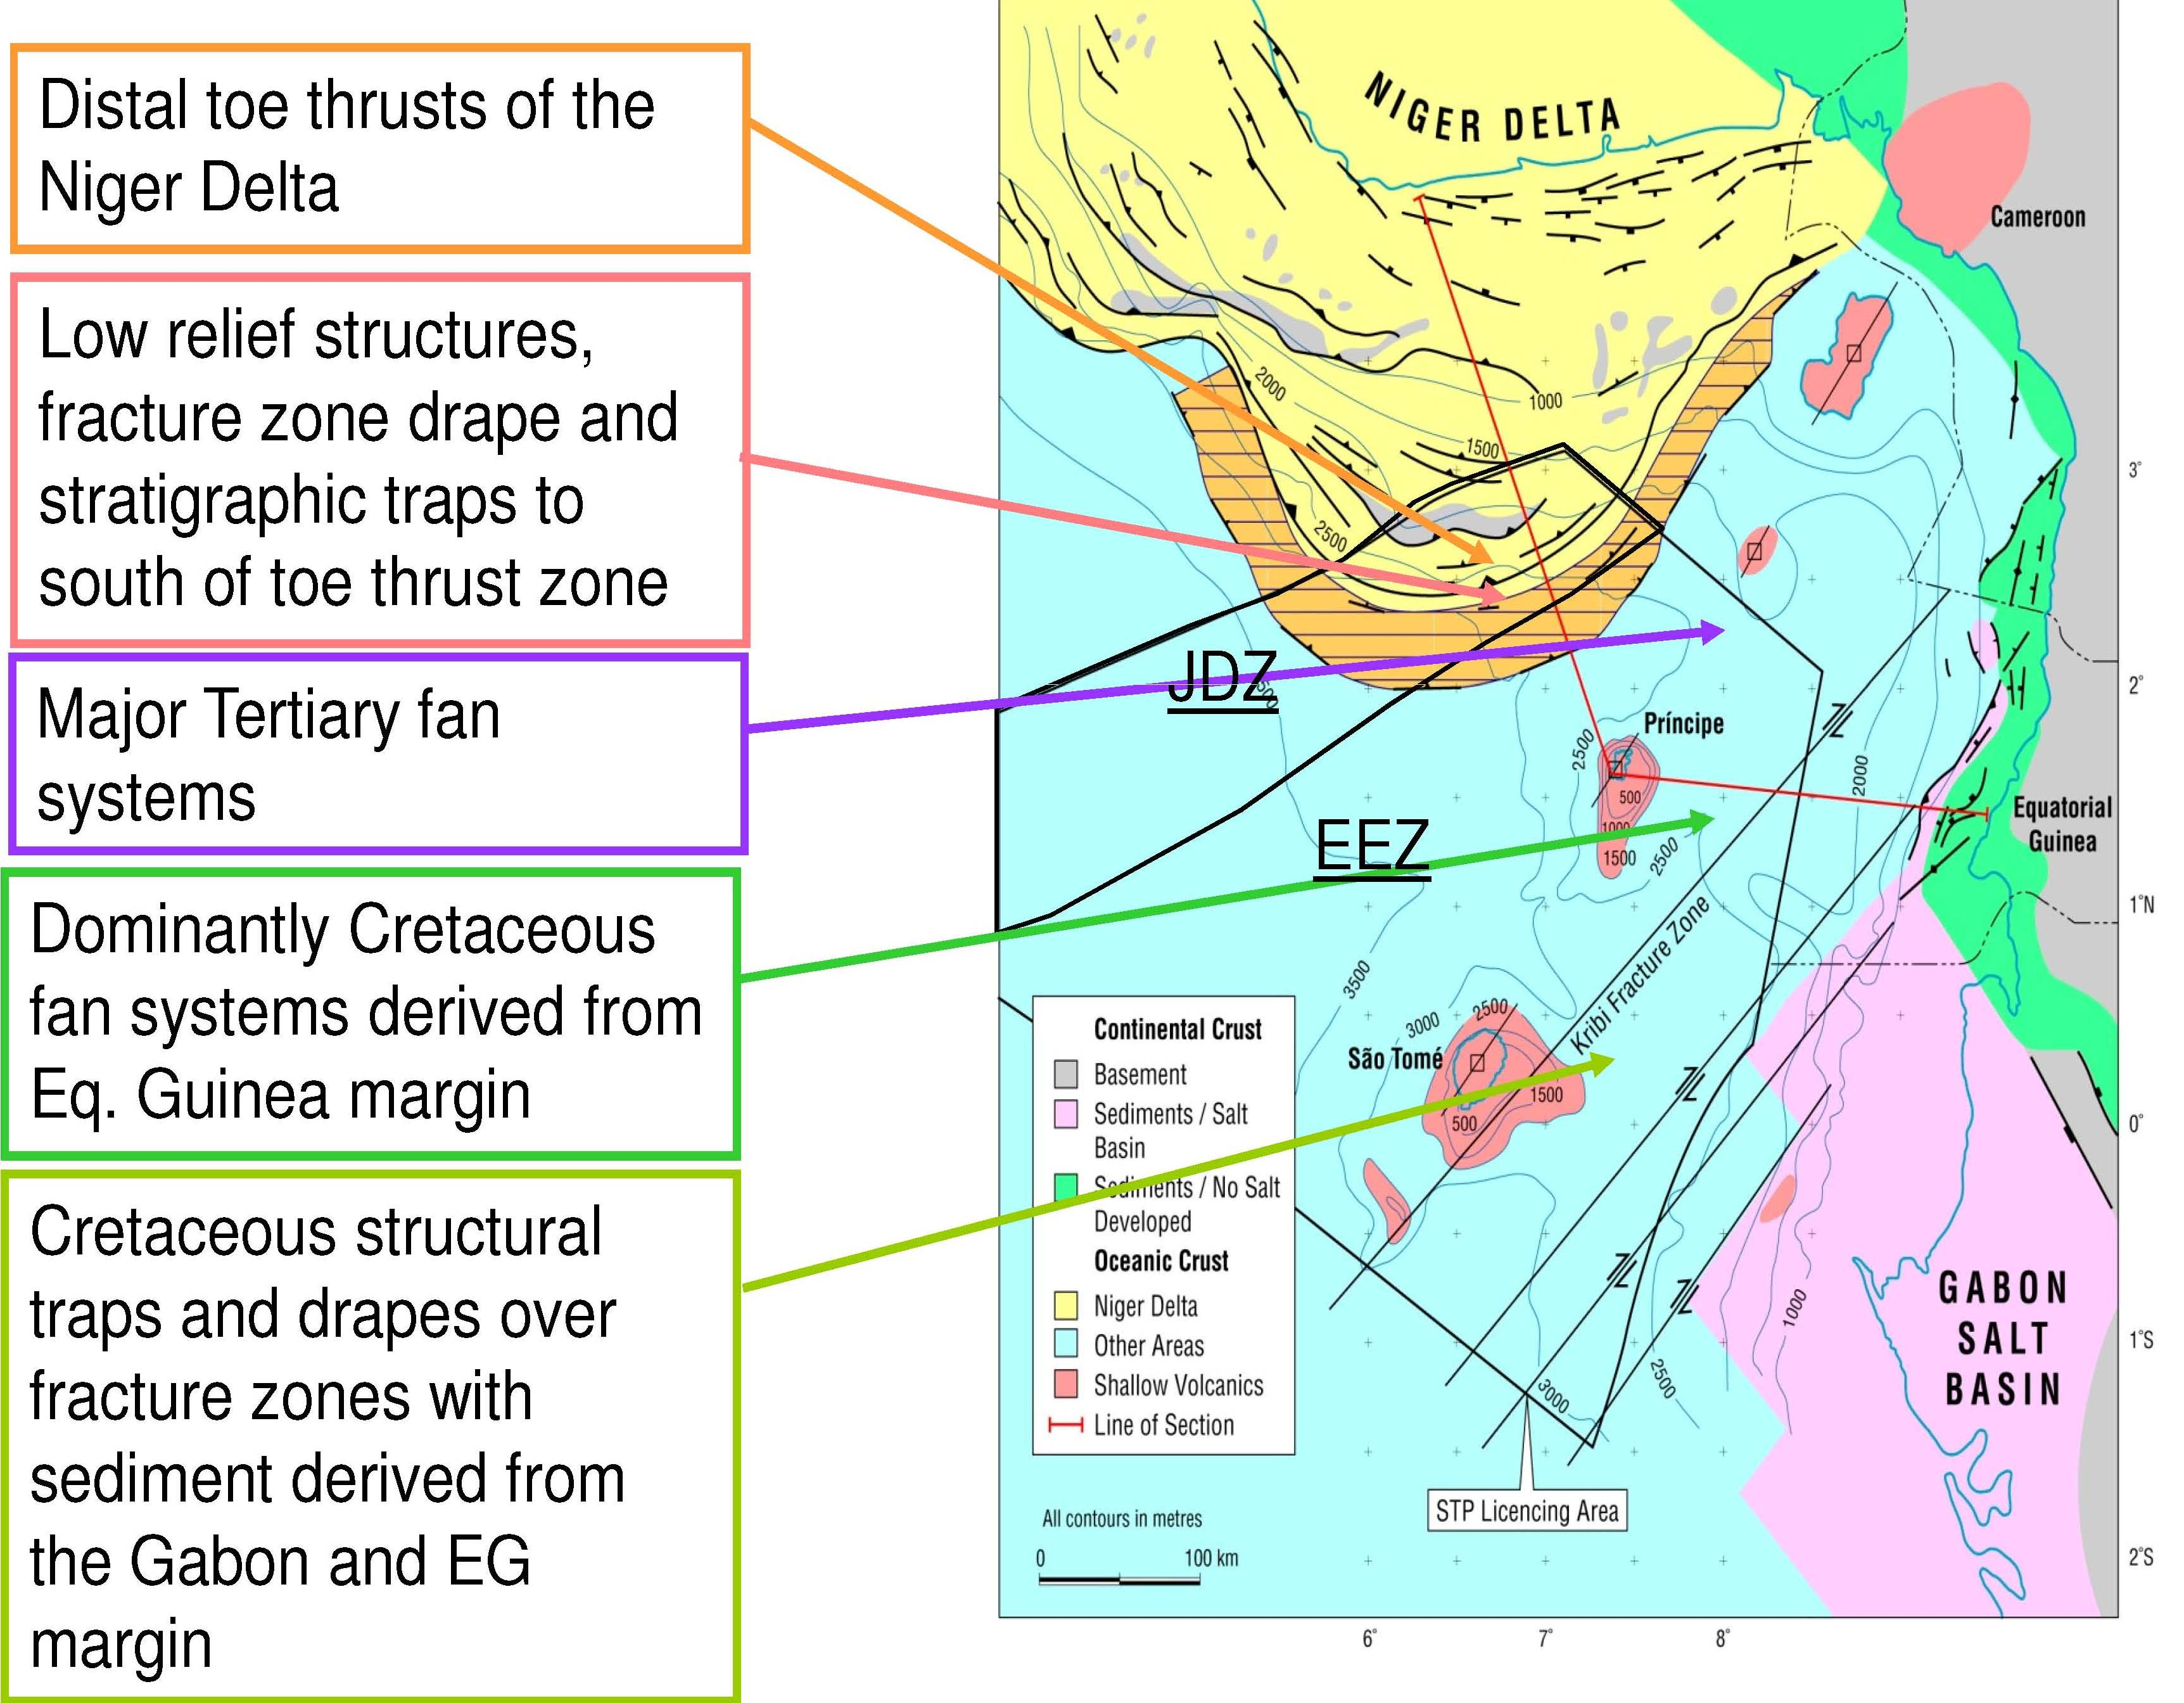 Sao Tome & Principe EEZ - Play Fairways